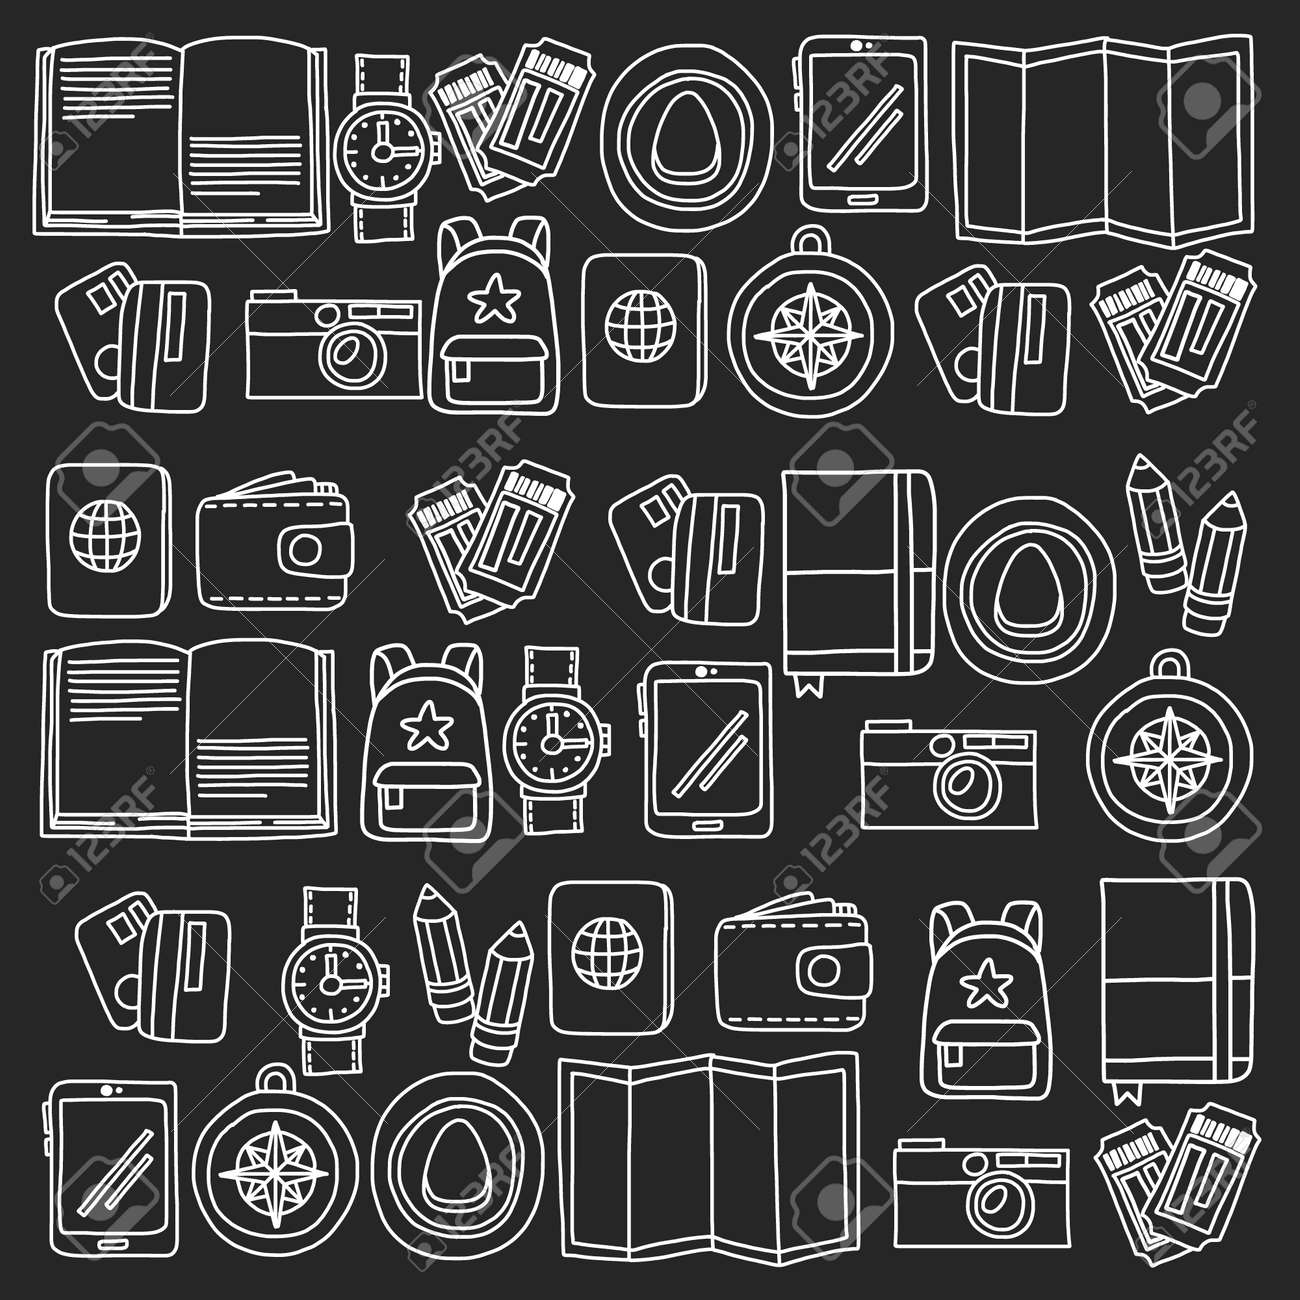 Vector pattern with travel icons. Get ready for adventures and travel. Hot air balloon, suitcase, airplane. Great vacation, holidays. - 120708786